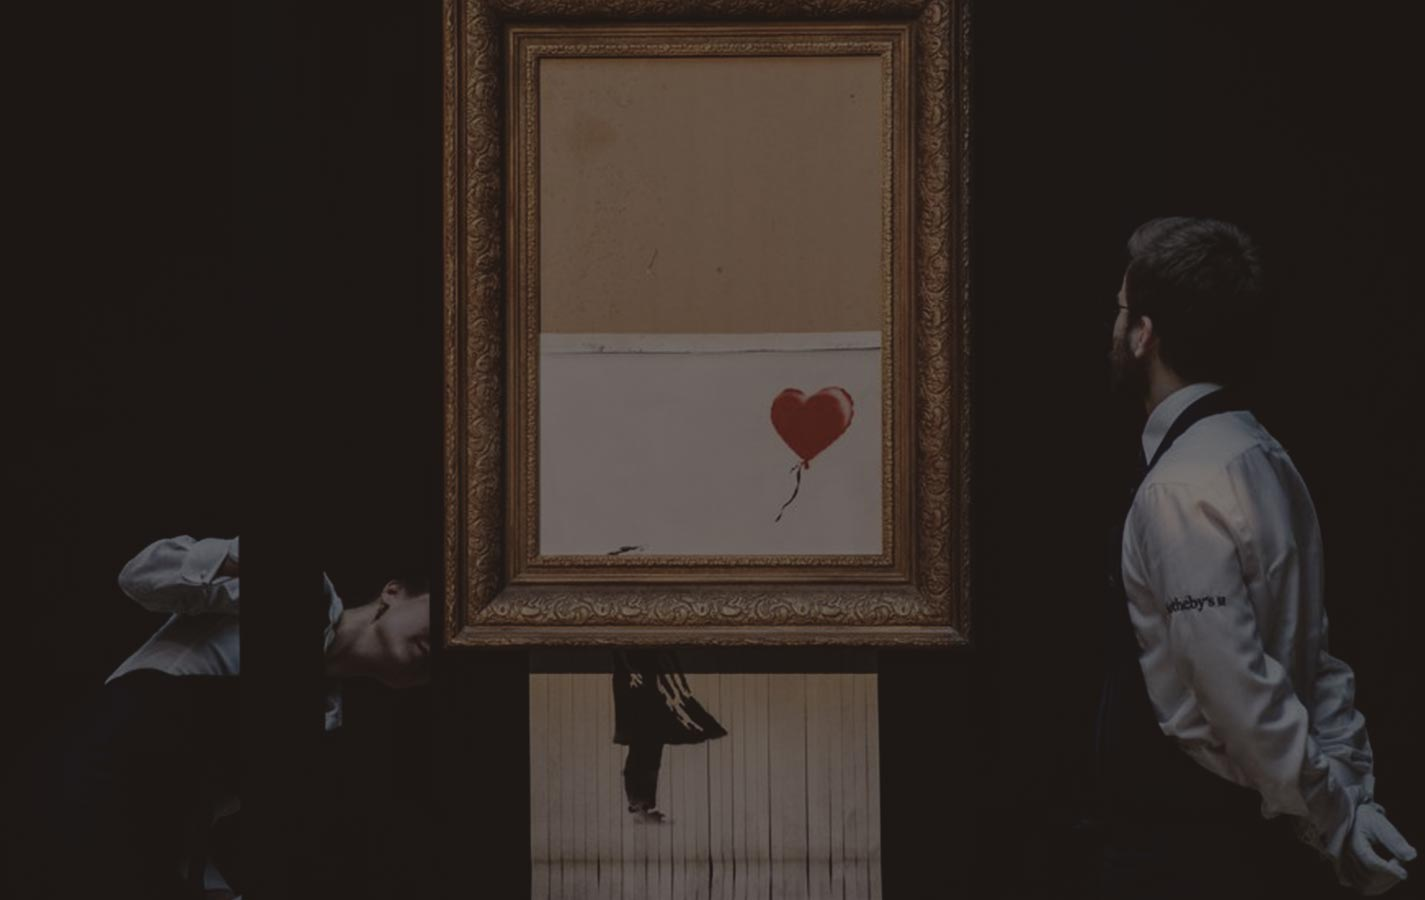 Girl with a balloon by Banksy turns into a new artwork